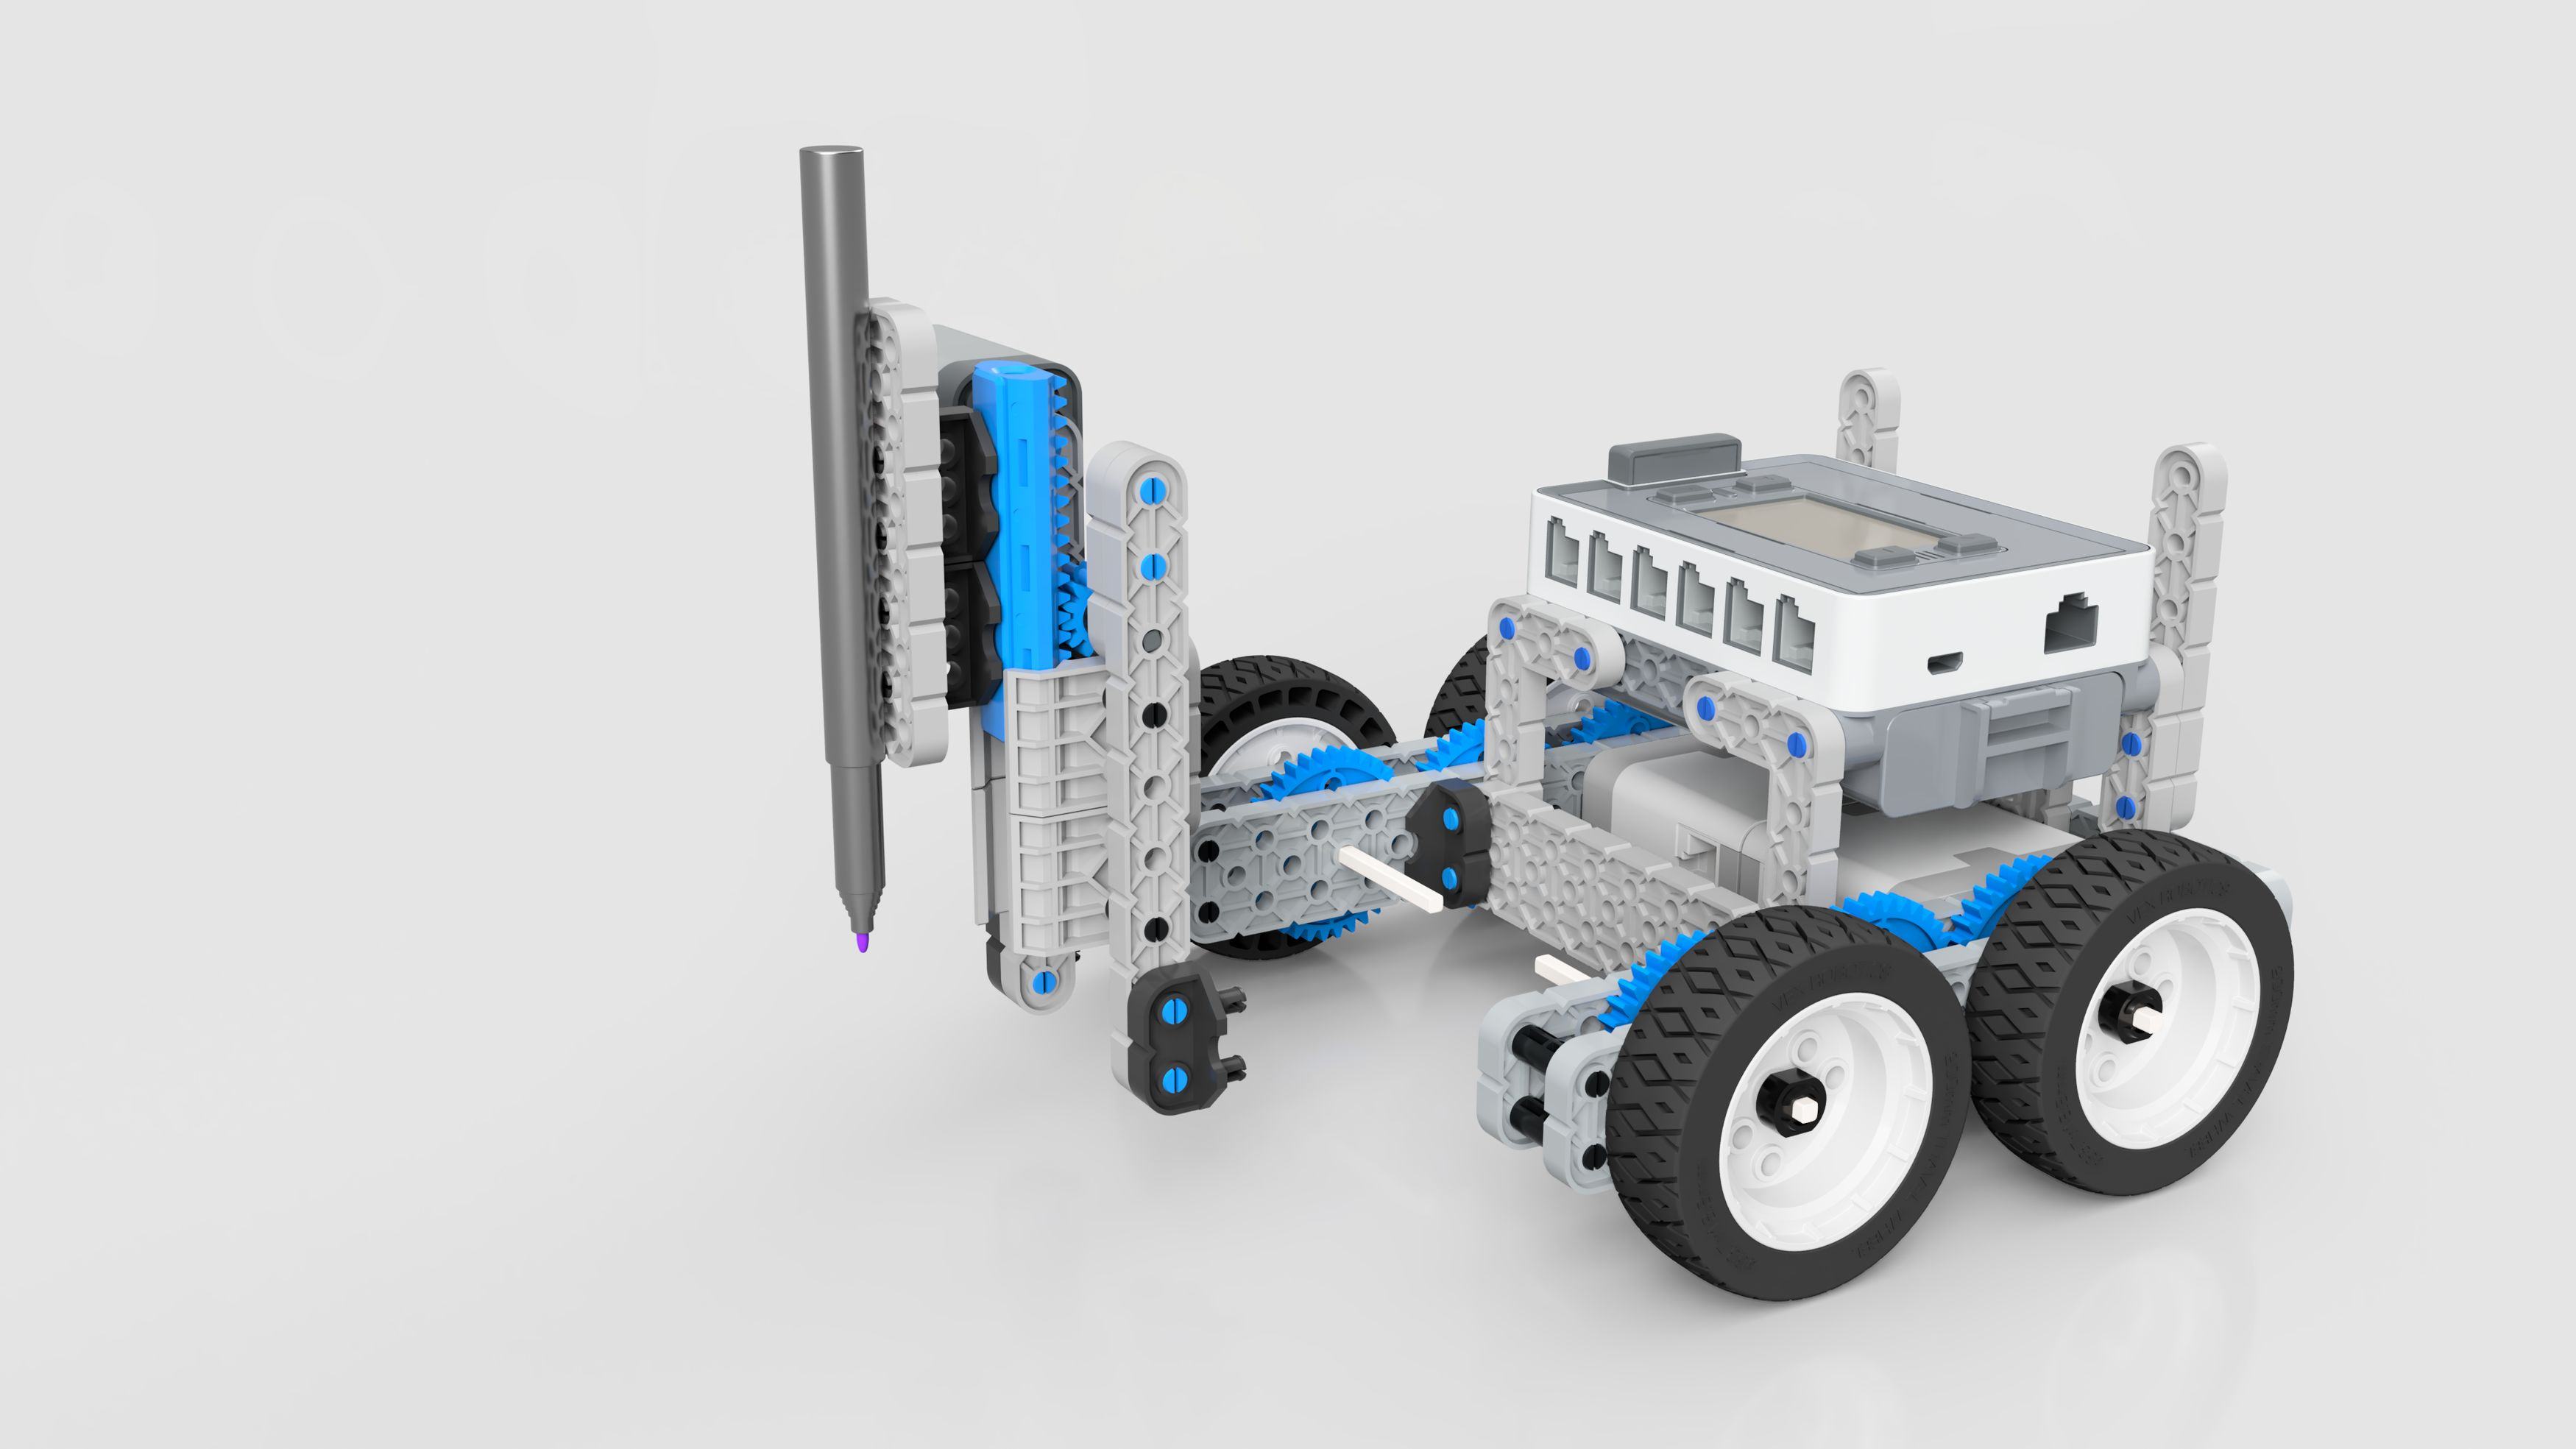 Vex-iq-robot-caneta-2020-may-21-06-39-01pm-000-customizedview37638210273-png-3500-3500